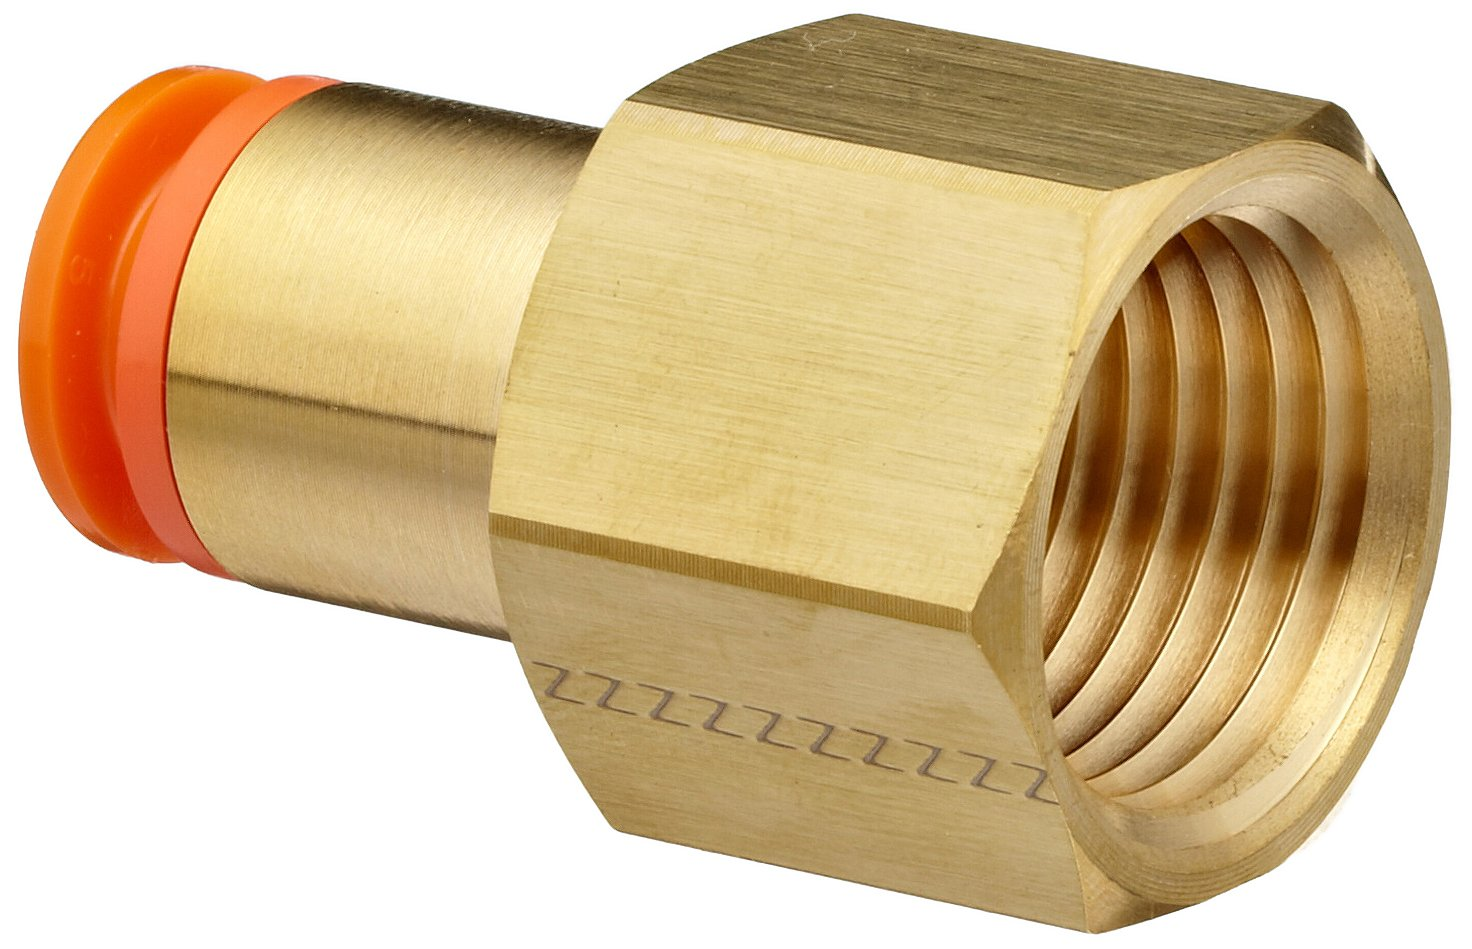 SMC KQ2F11-37A Brass Push-to-Connect Tube Fitting, Adapter, 3/8'' Tube OD x 1/2'' NPT Female (Pack of 10)